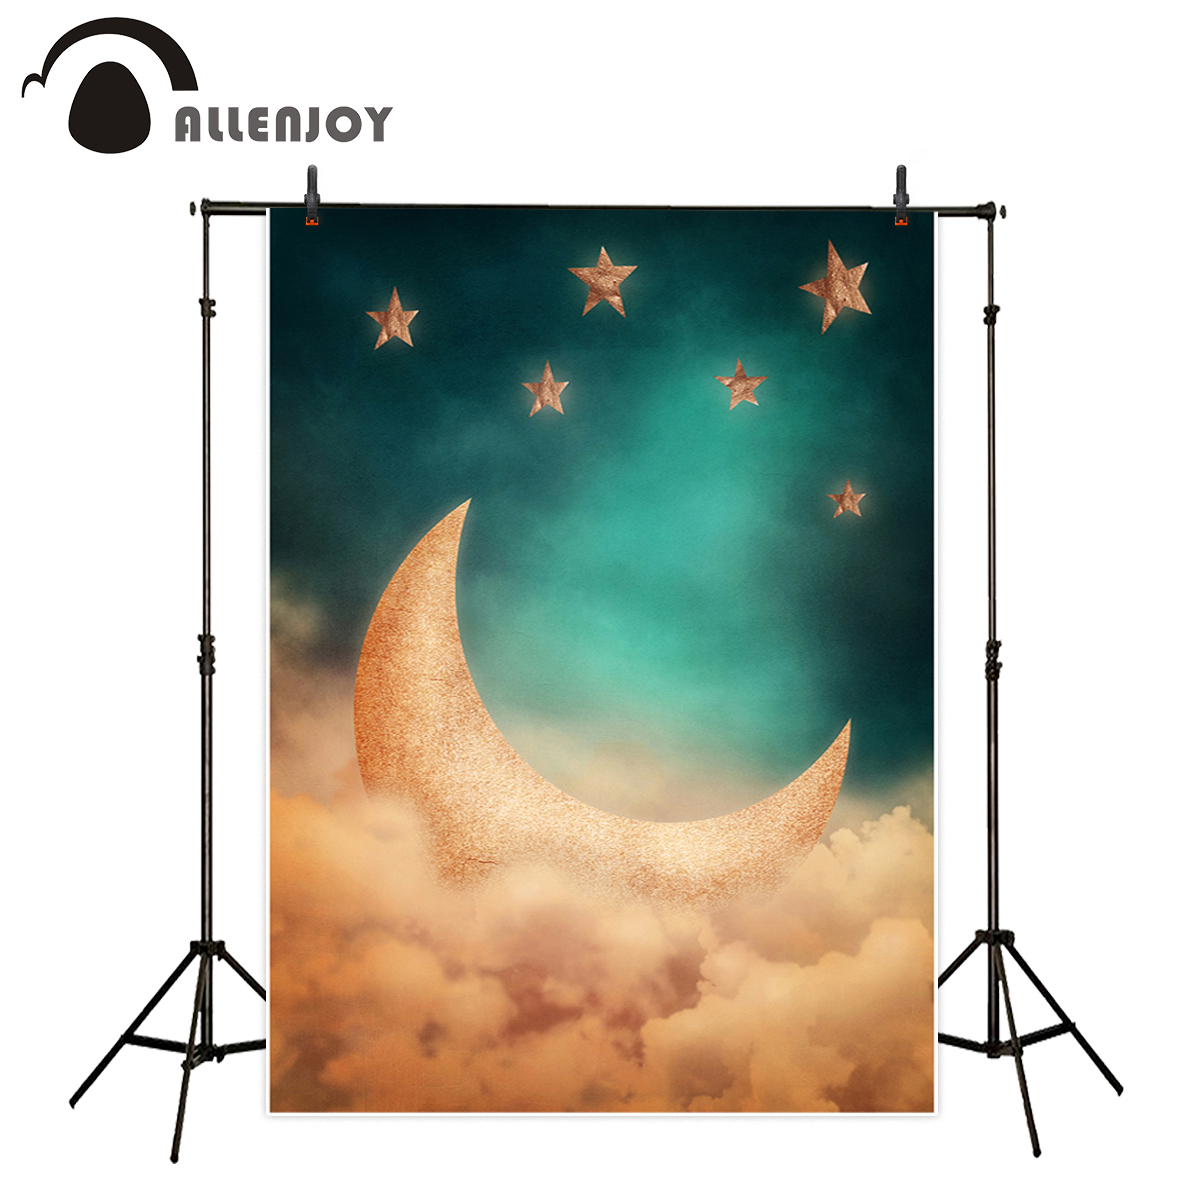 Allenjoy camera fotografica background Classic vintage stars cloud moon dream vinyl fabric fotografia photocall for photo studio